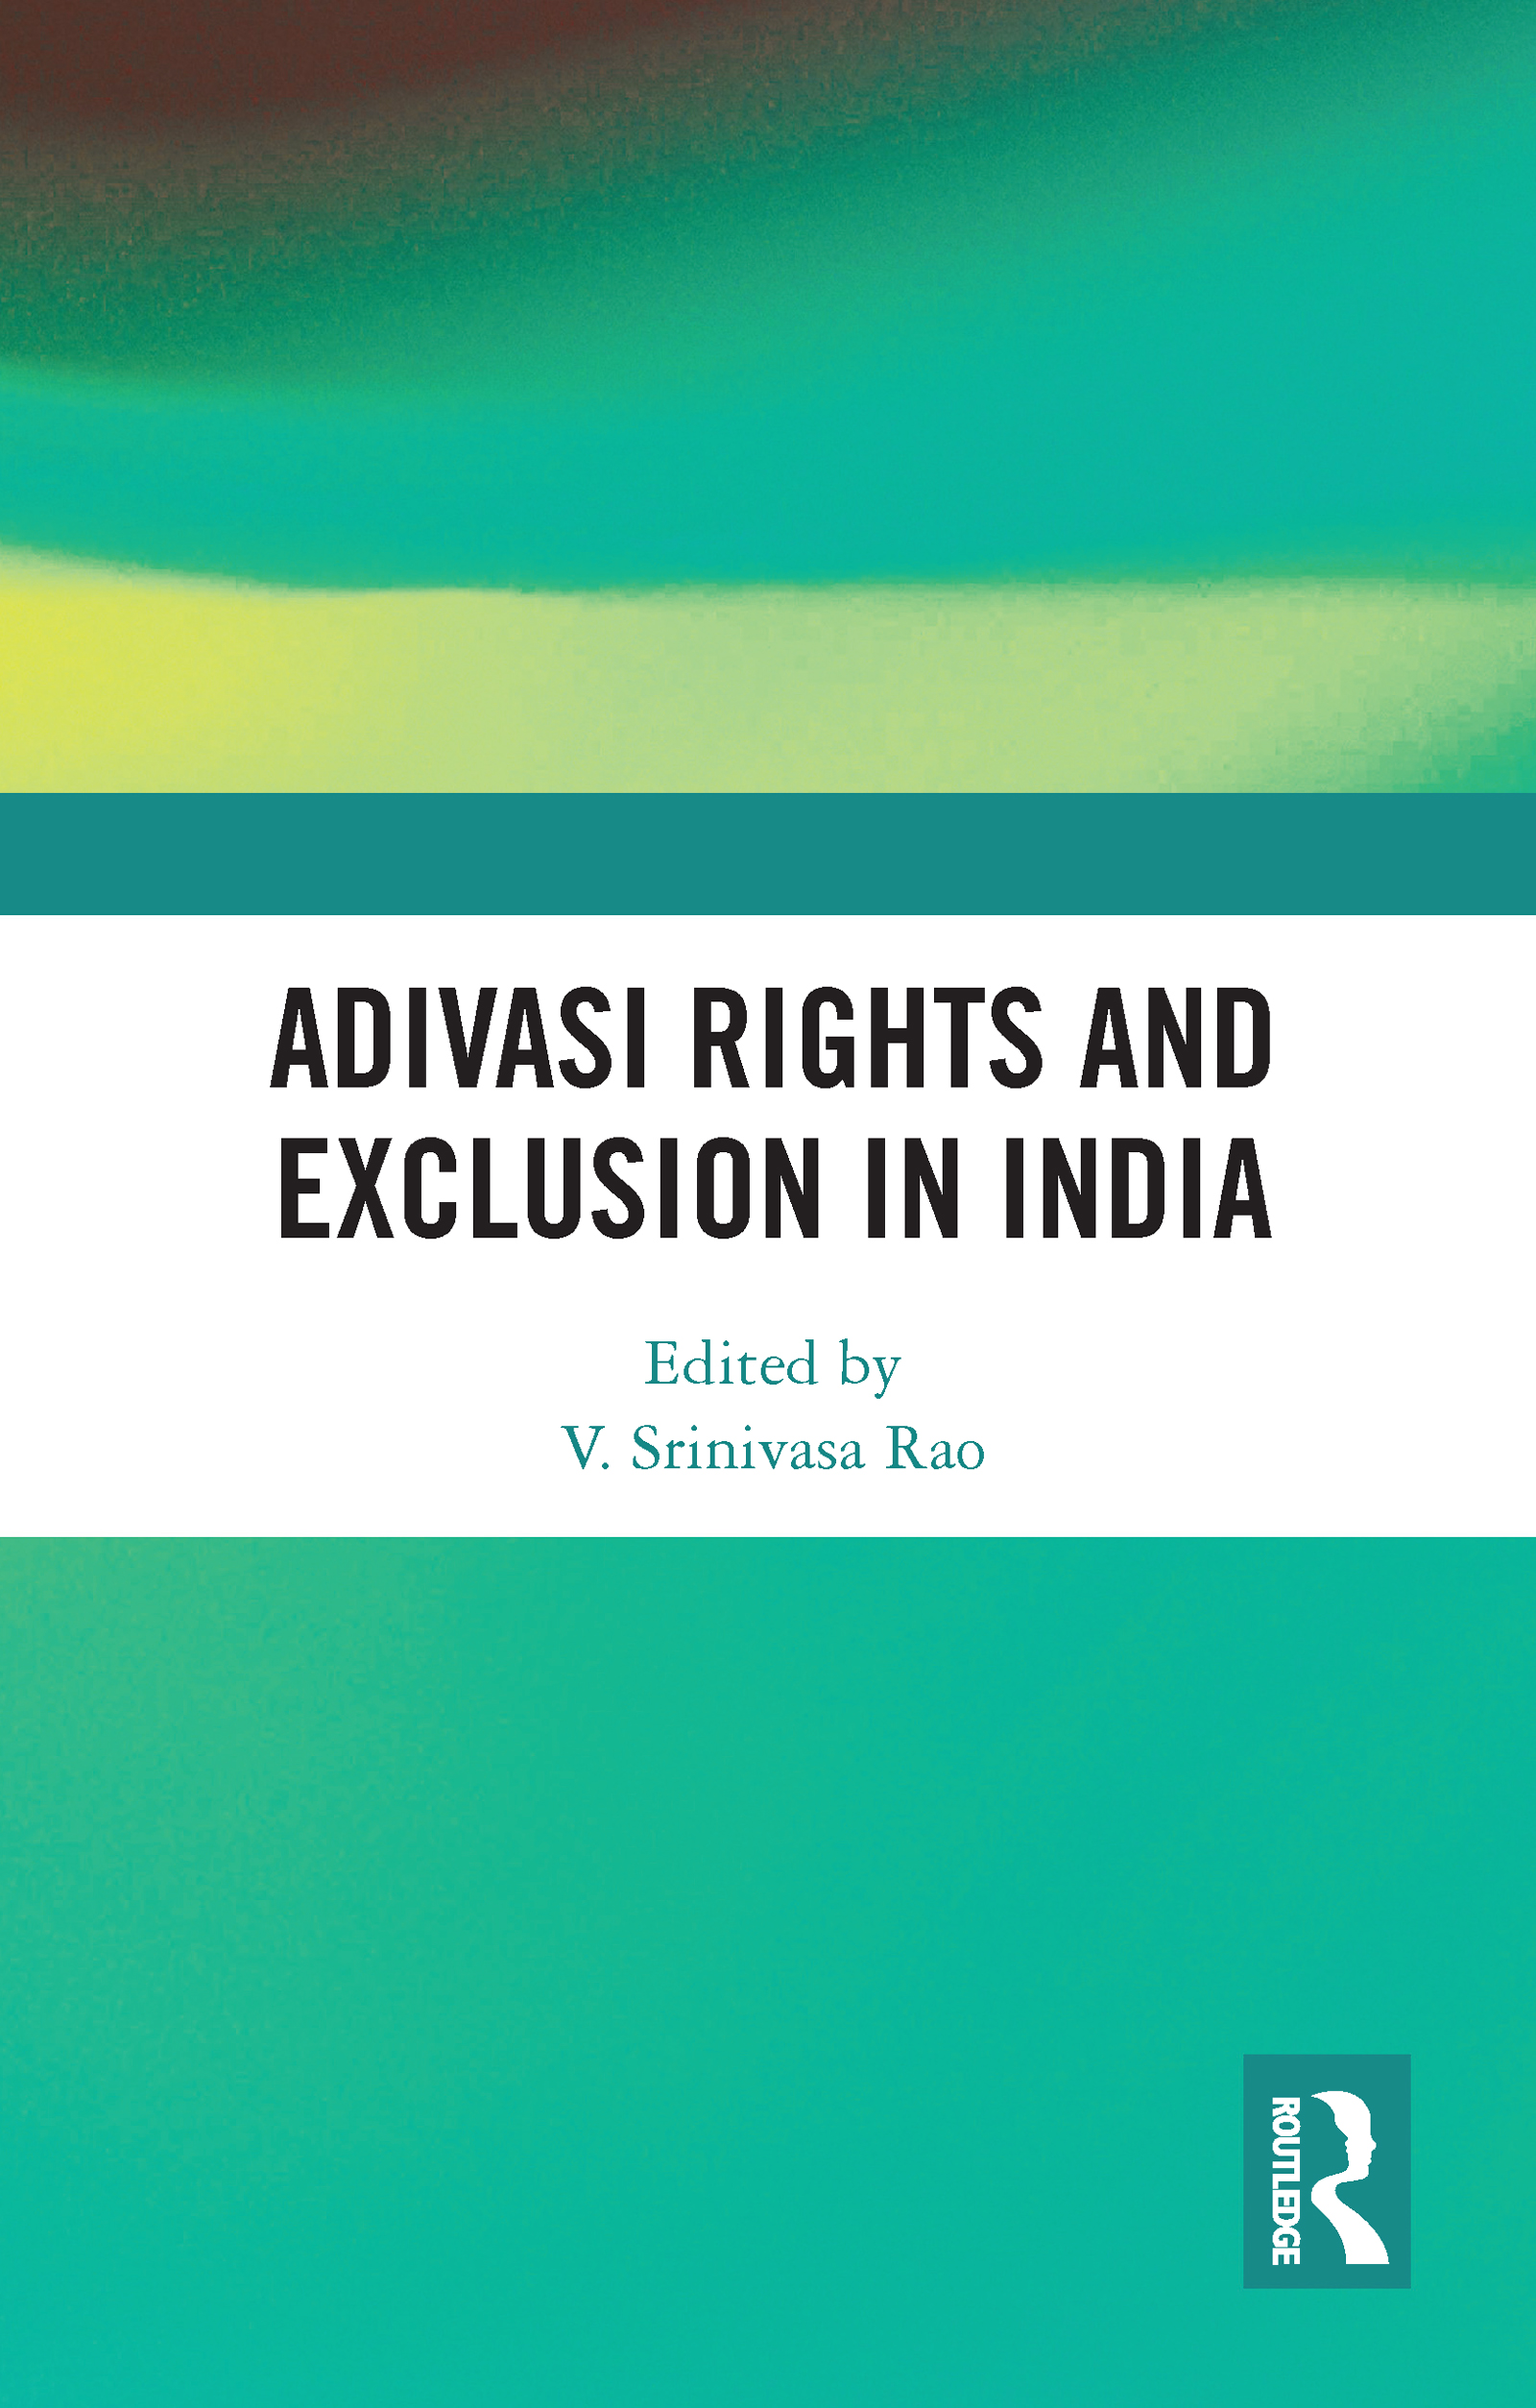 Adivasi Rights and Exclusion in India